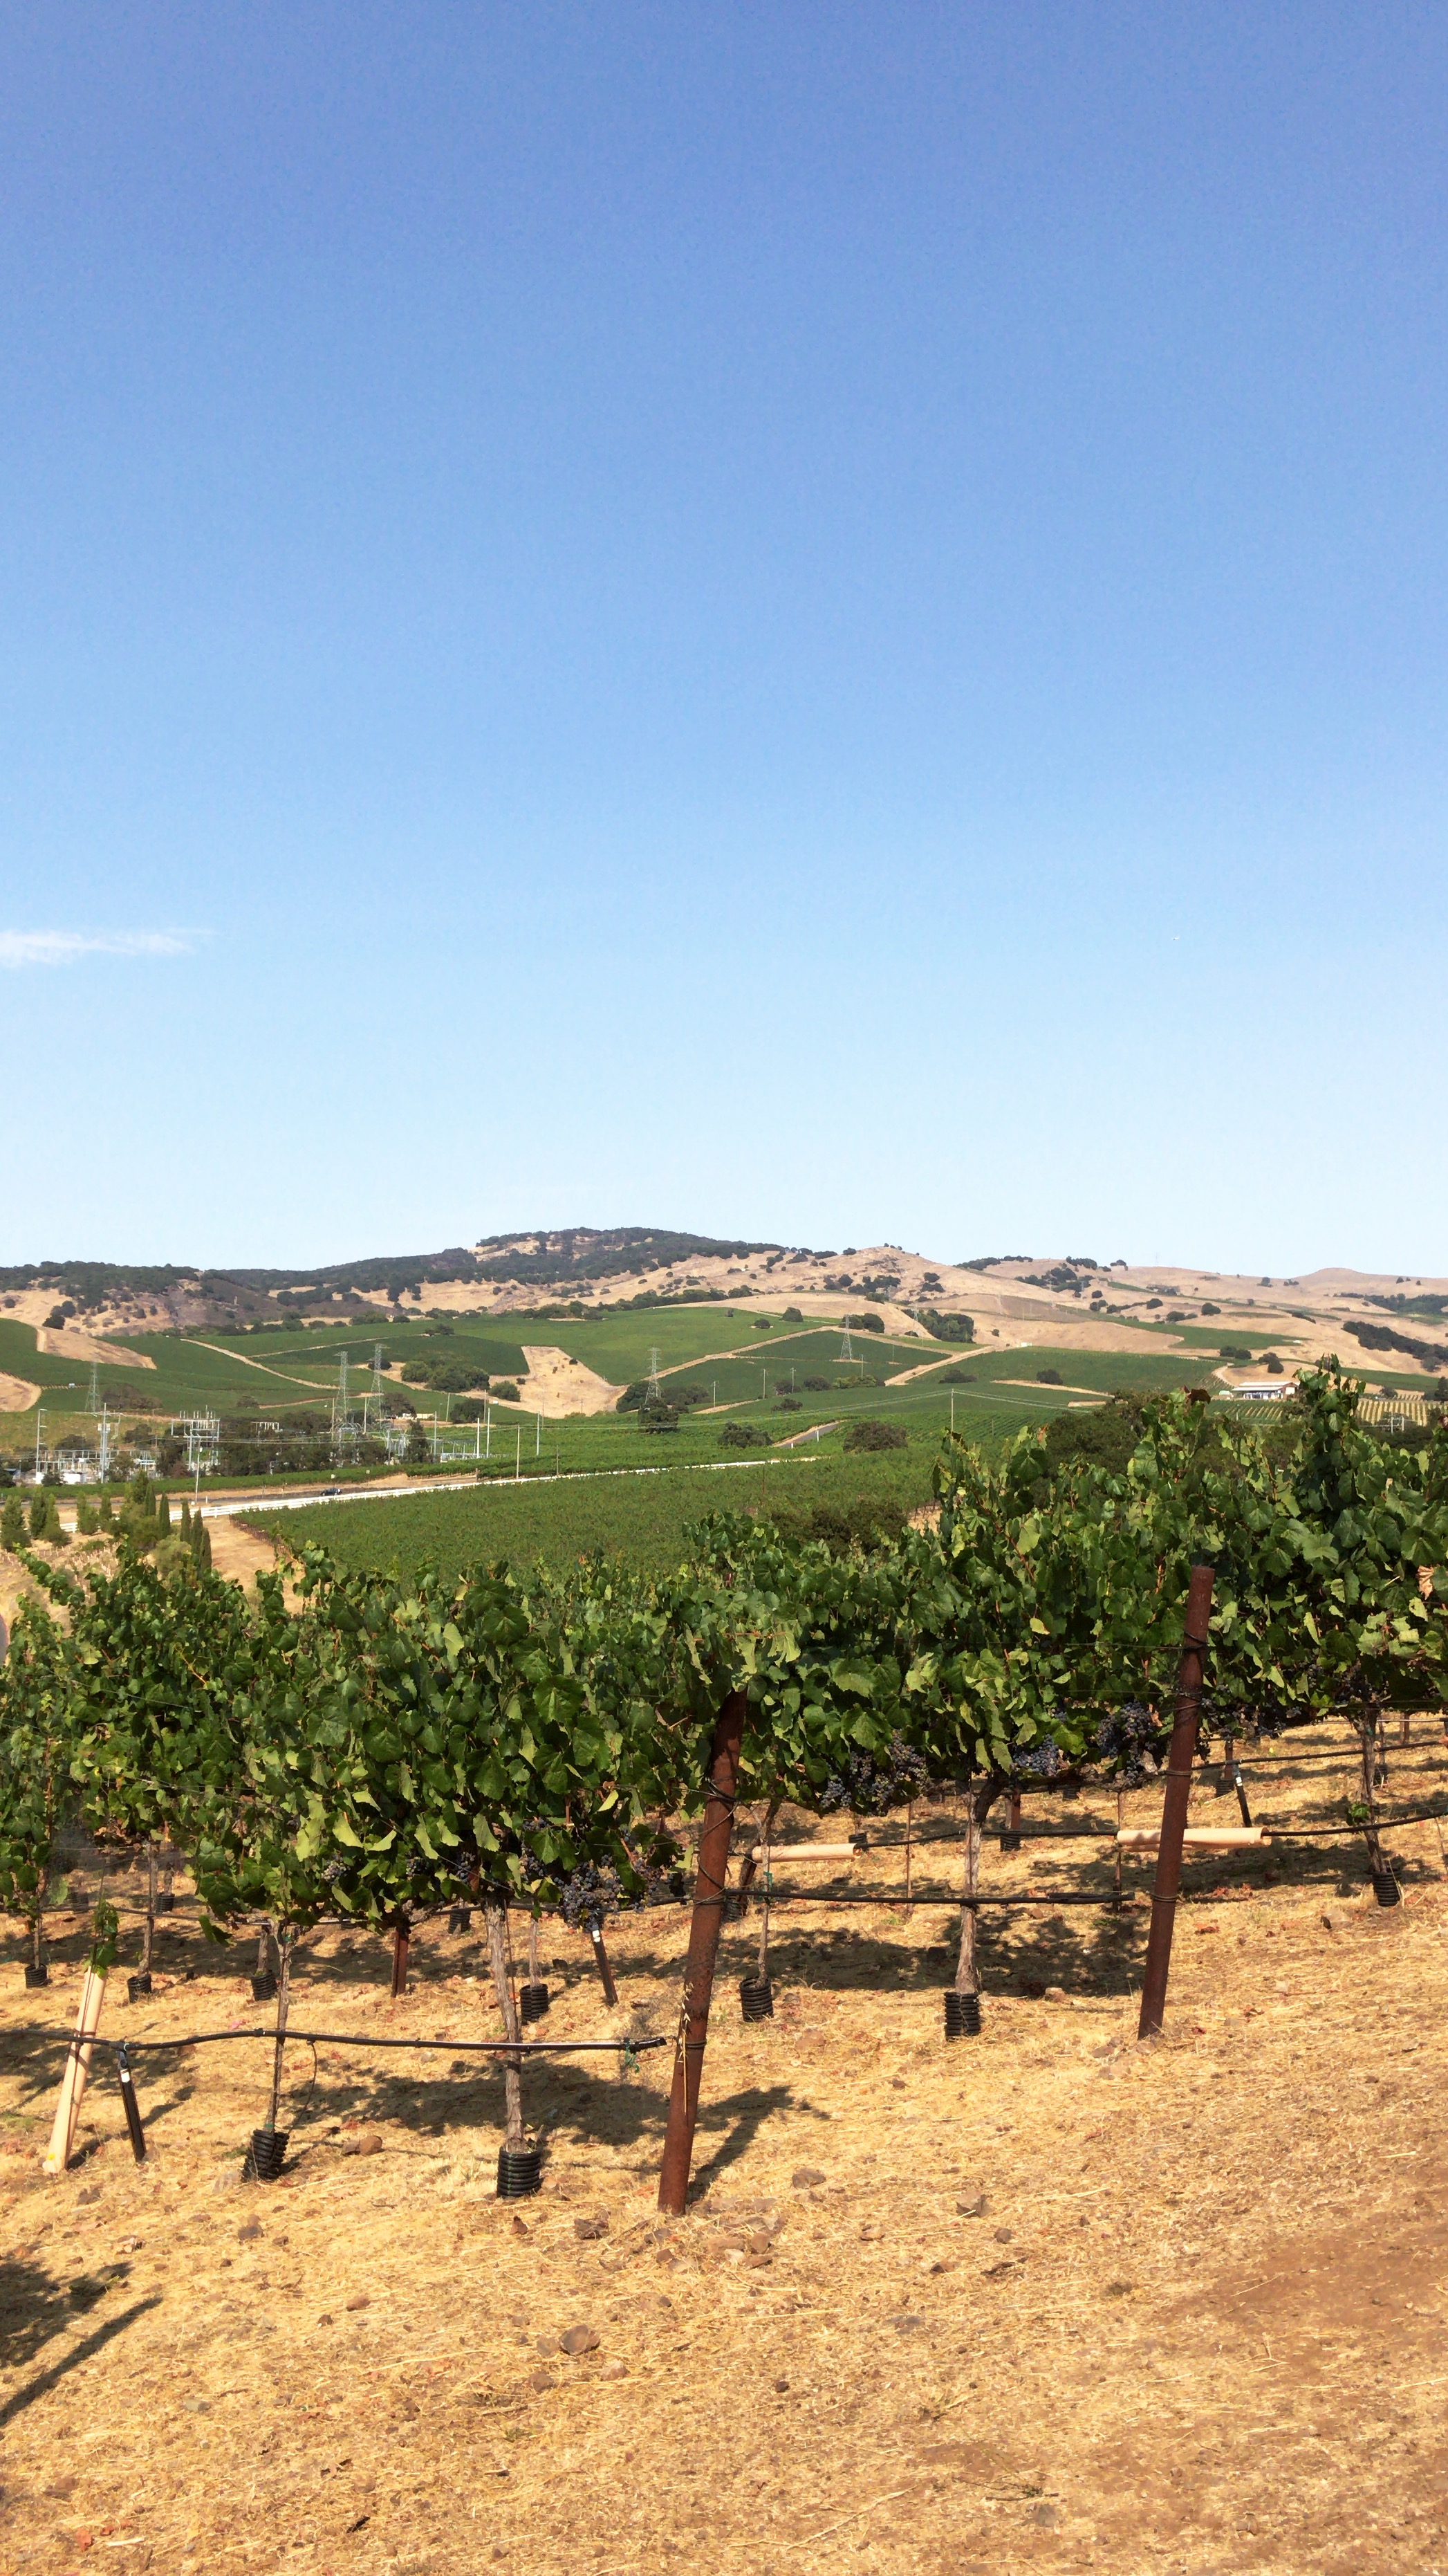 Rolling hillsides in Sonoma and Napa Valley filled with vineyards ready for wine tasting!